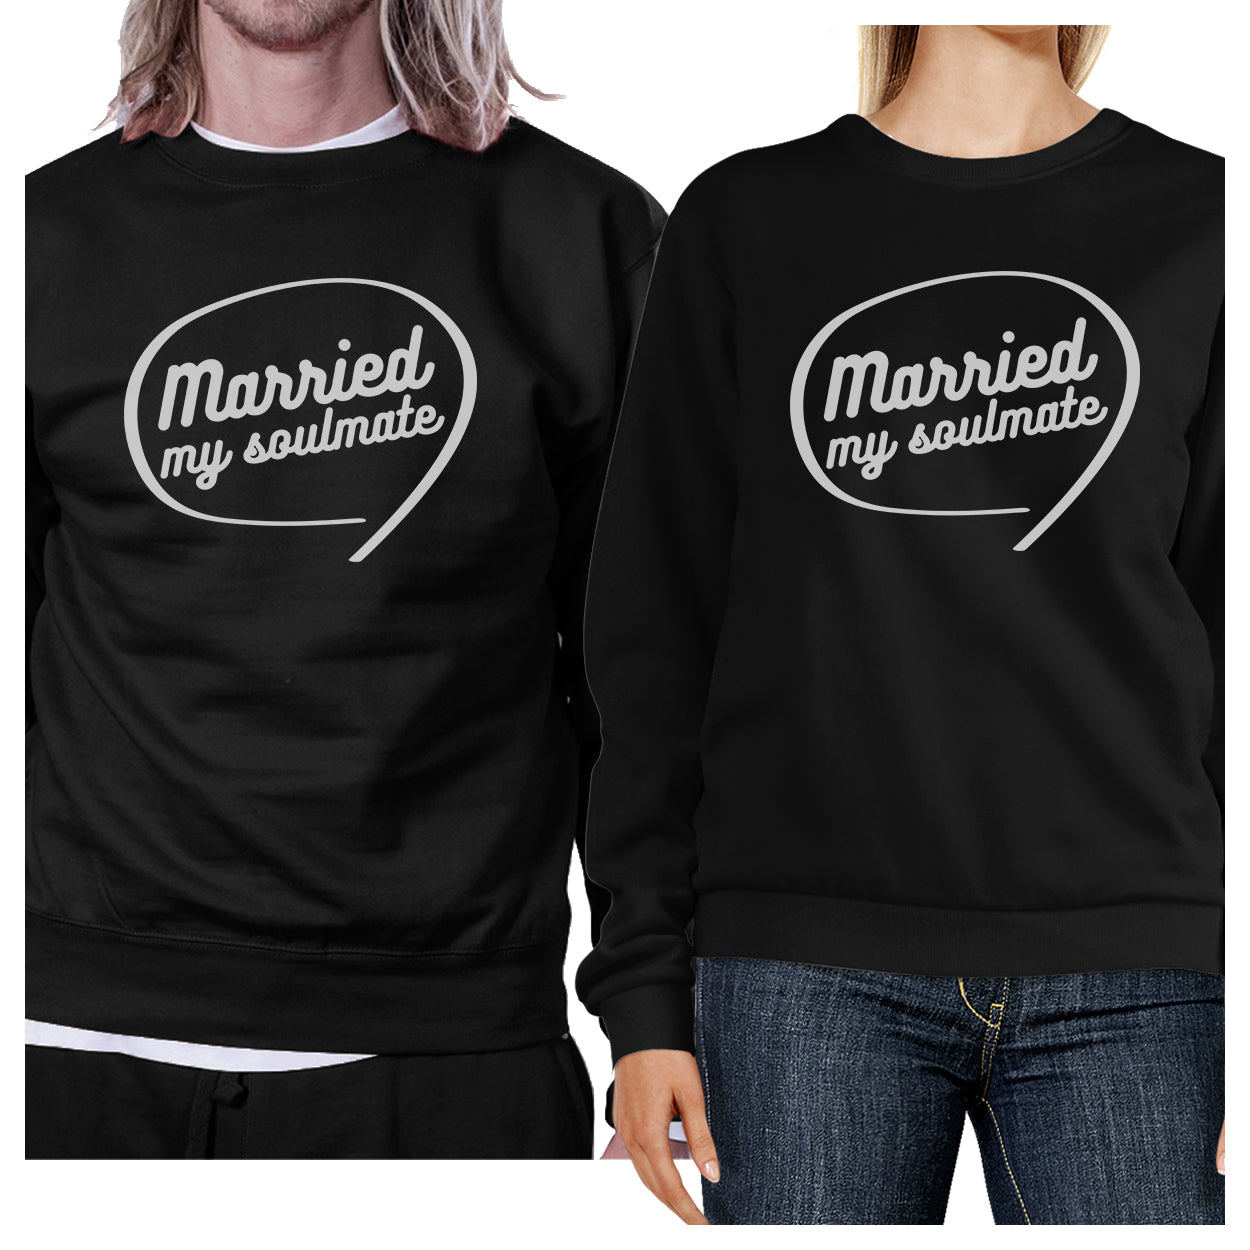 93466ef49f Married My Soulmate Matching Couple Black Sweatshirts - 365 IN LOVE ...